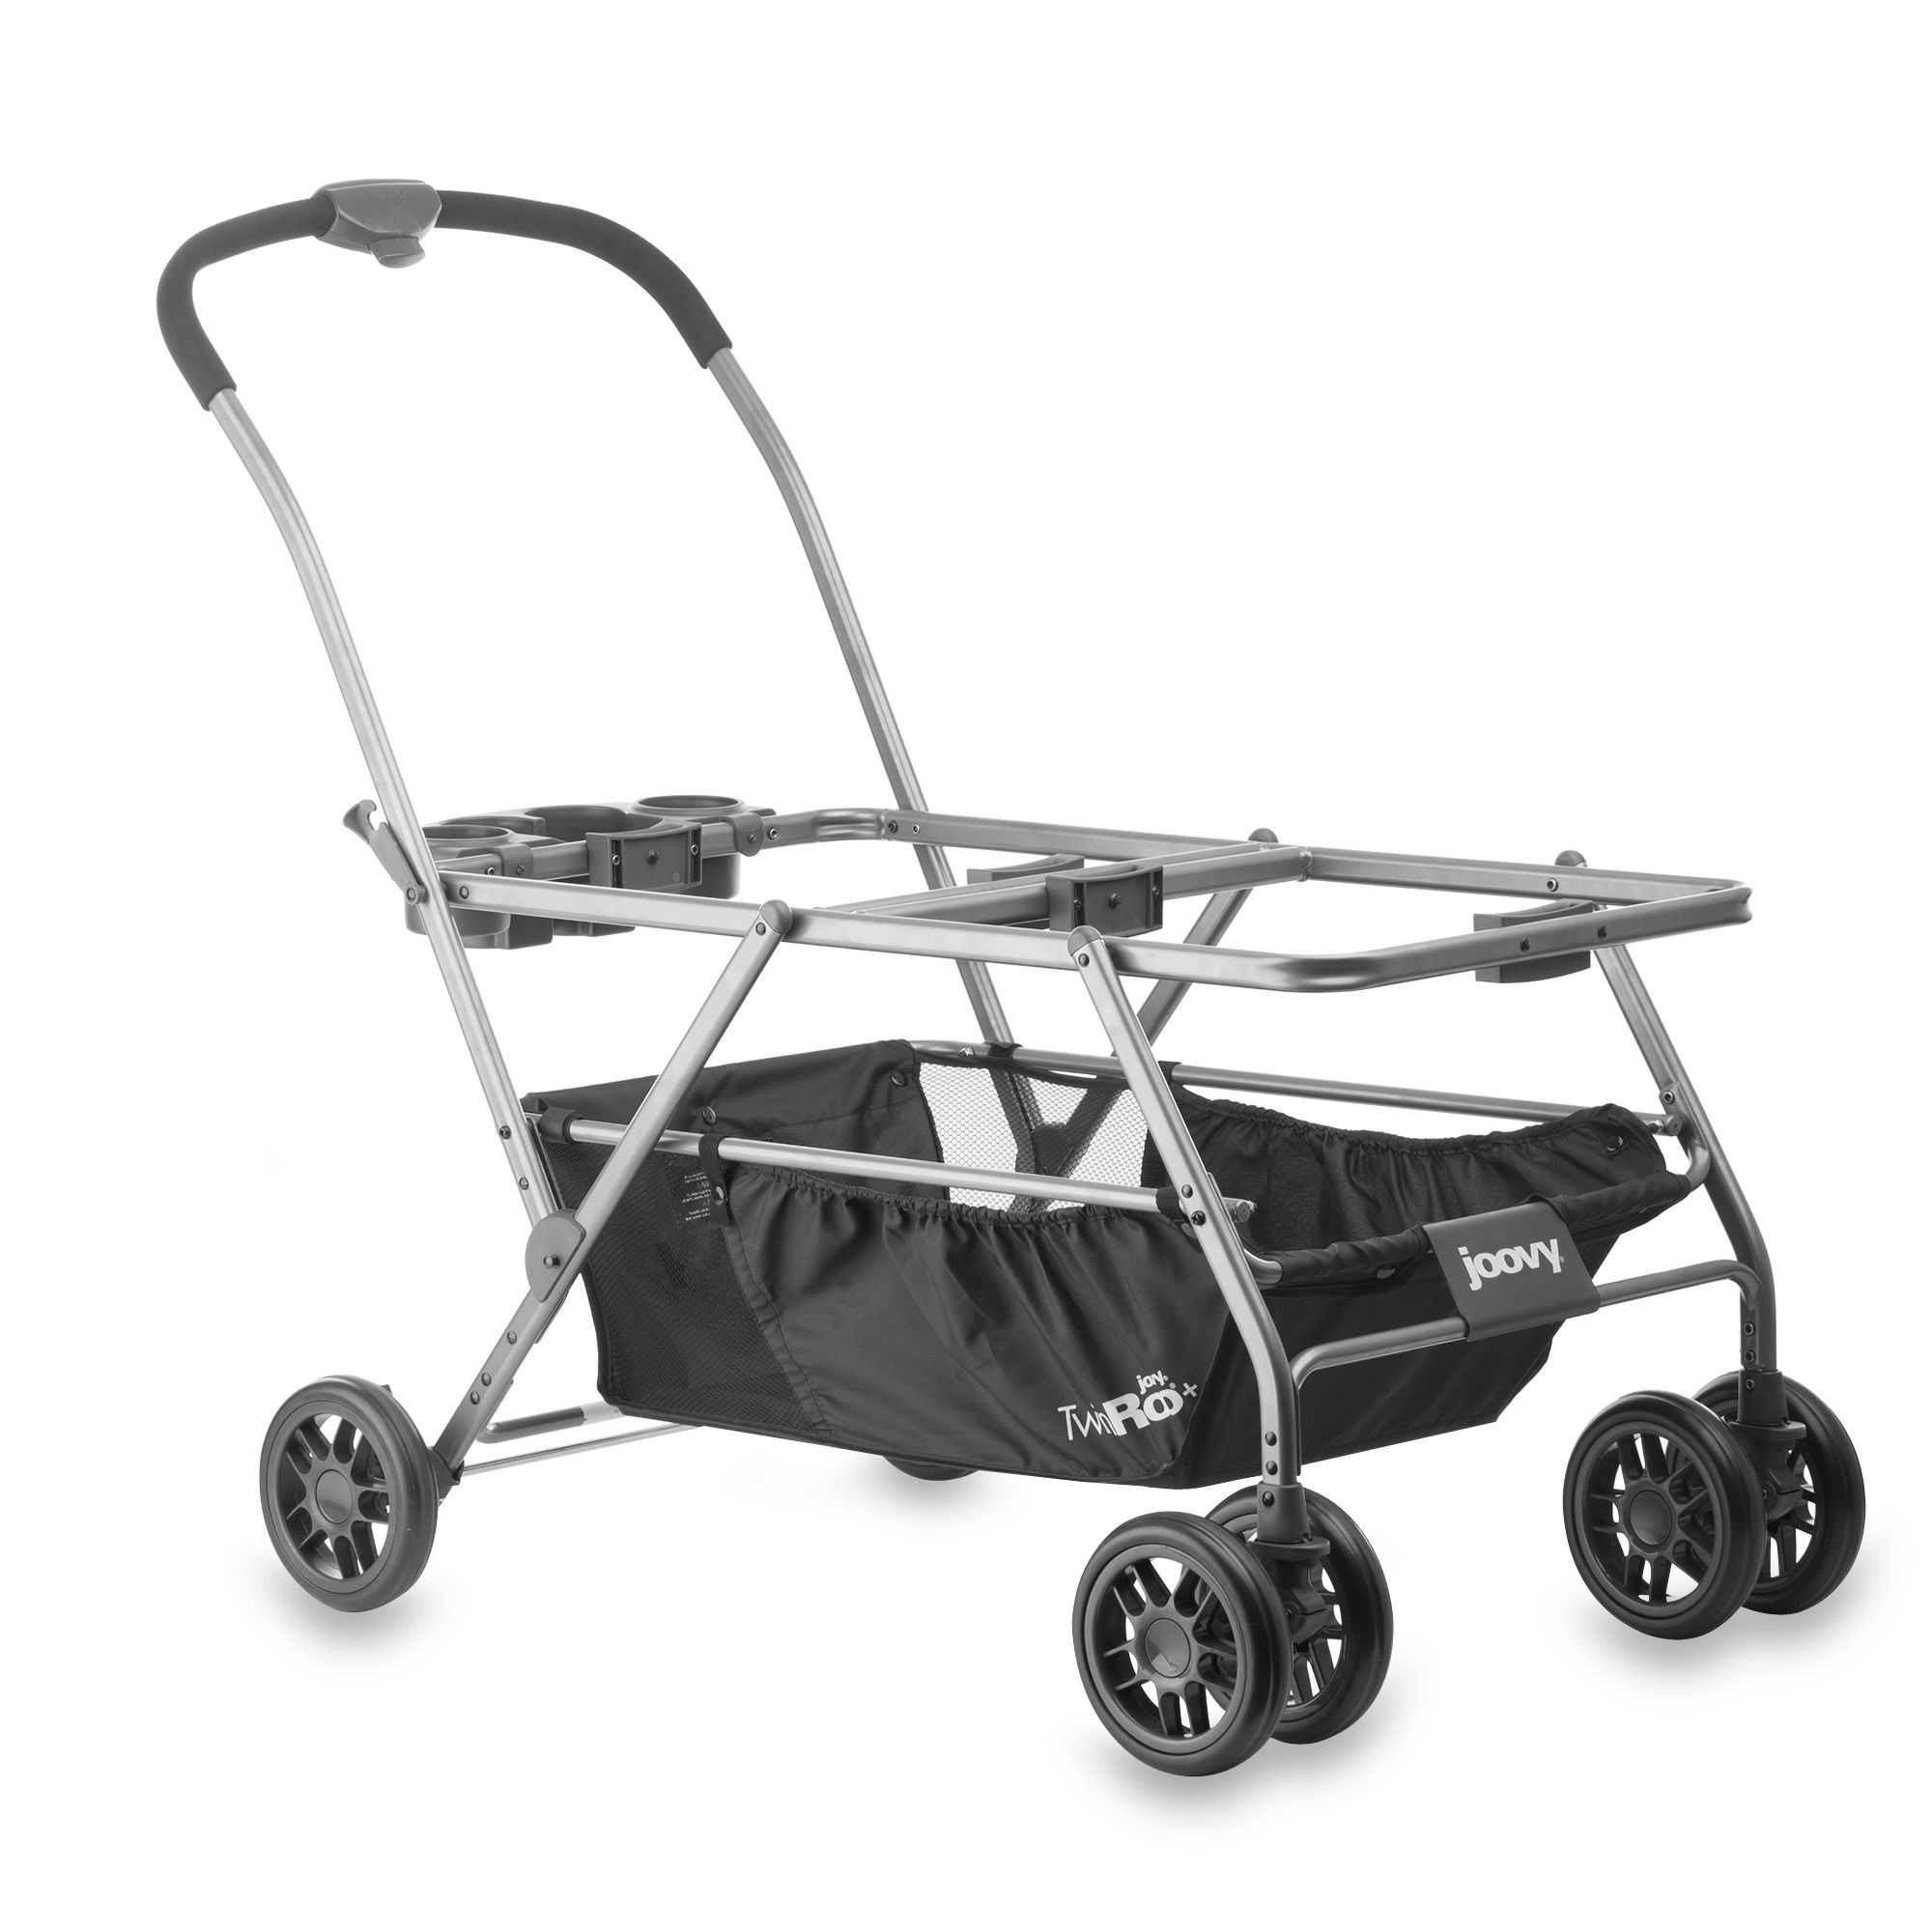 Safety First Stroller And Car Seats Car Seat Frame Stroller